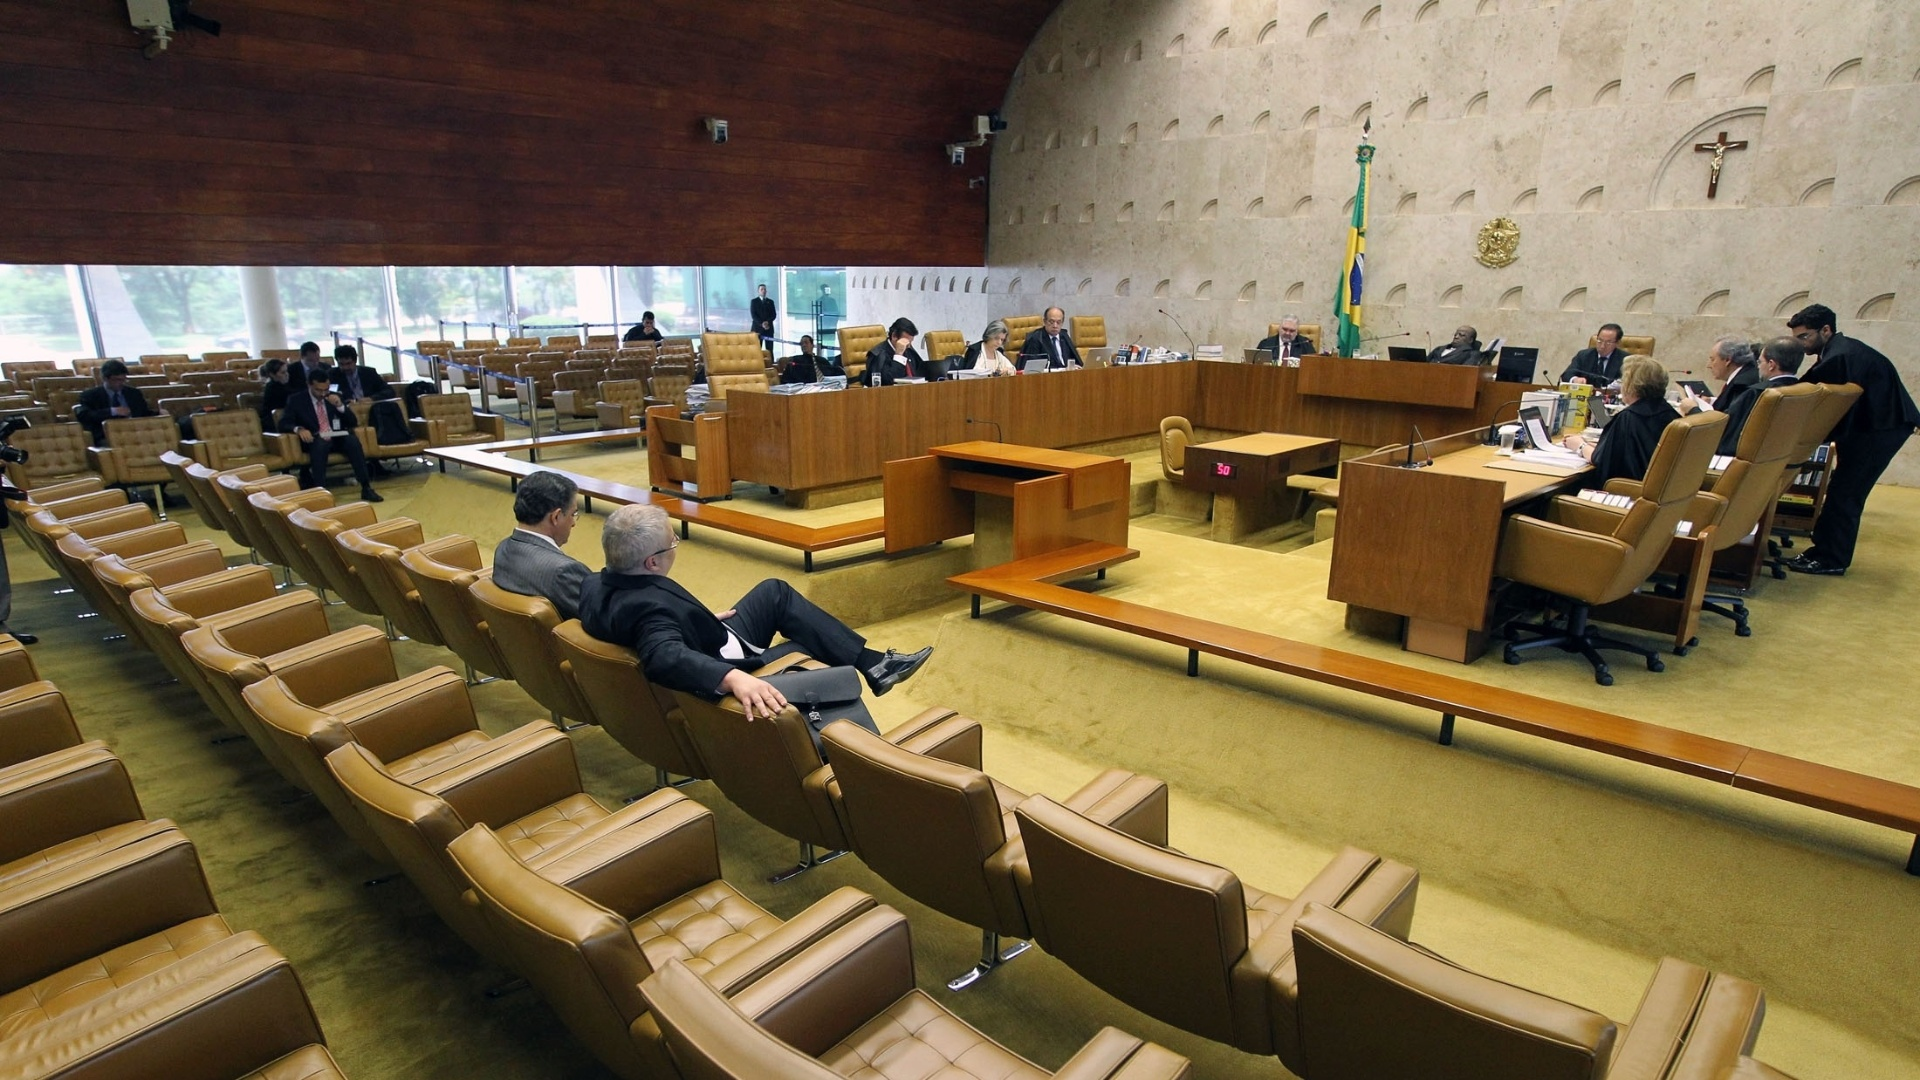 10.dez.2012 - Plenrio do STF durante sesso de julgamento do mensalo. Os ministros discutem nesta segunda-feira (10) se caber  corte ou  Cmara definir a perda de mandato dos deputados federais condenados no processo